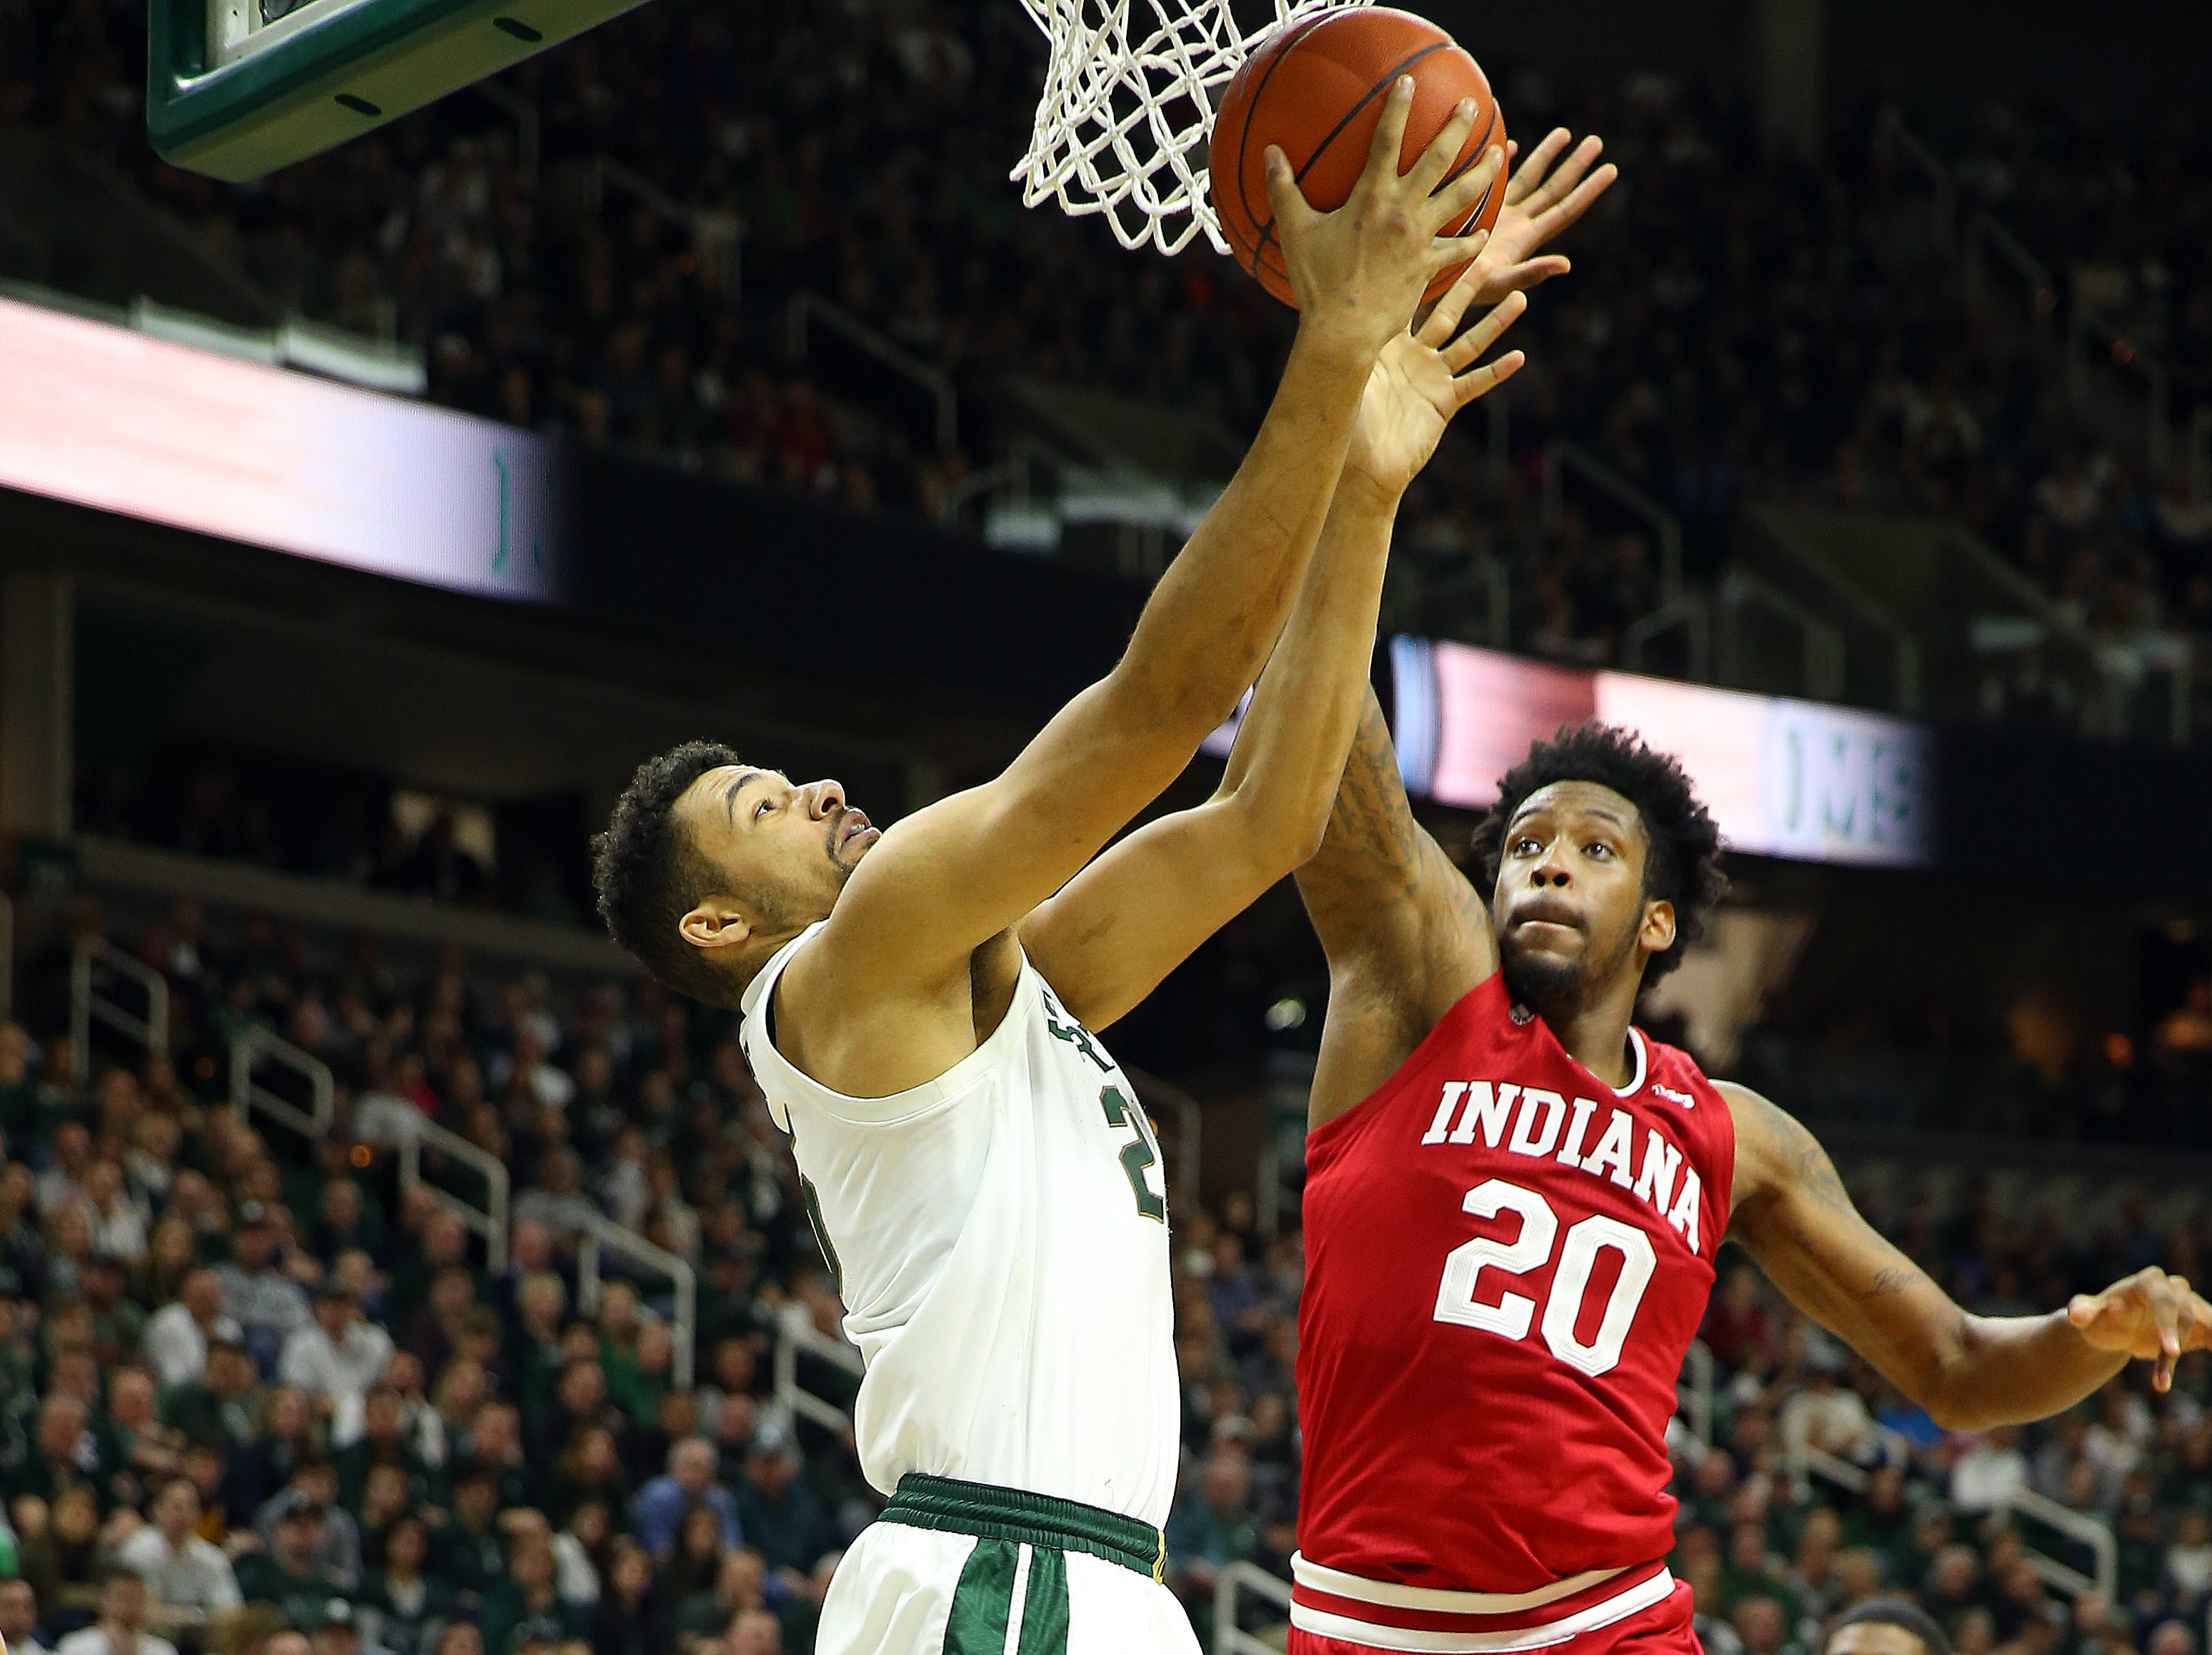 Feb 2, 2019; East Lansing, MI, USA; Michigan State Spartans forward Kenny Goins (25) is defended by Indiana Hoosiers forward De'Ron Davis (20) during the second half of a game at the Breslin Center. Mandatory Credit: Mike Carter-USA TODAY Sports